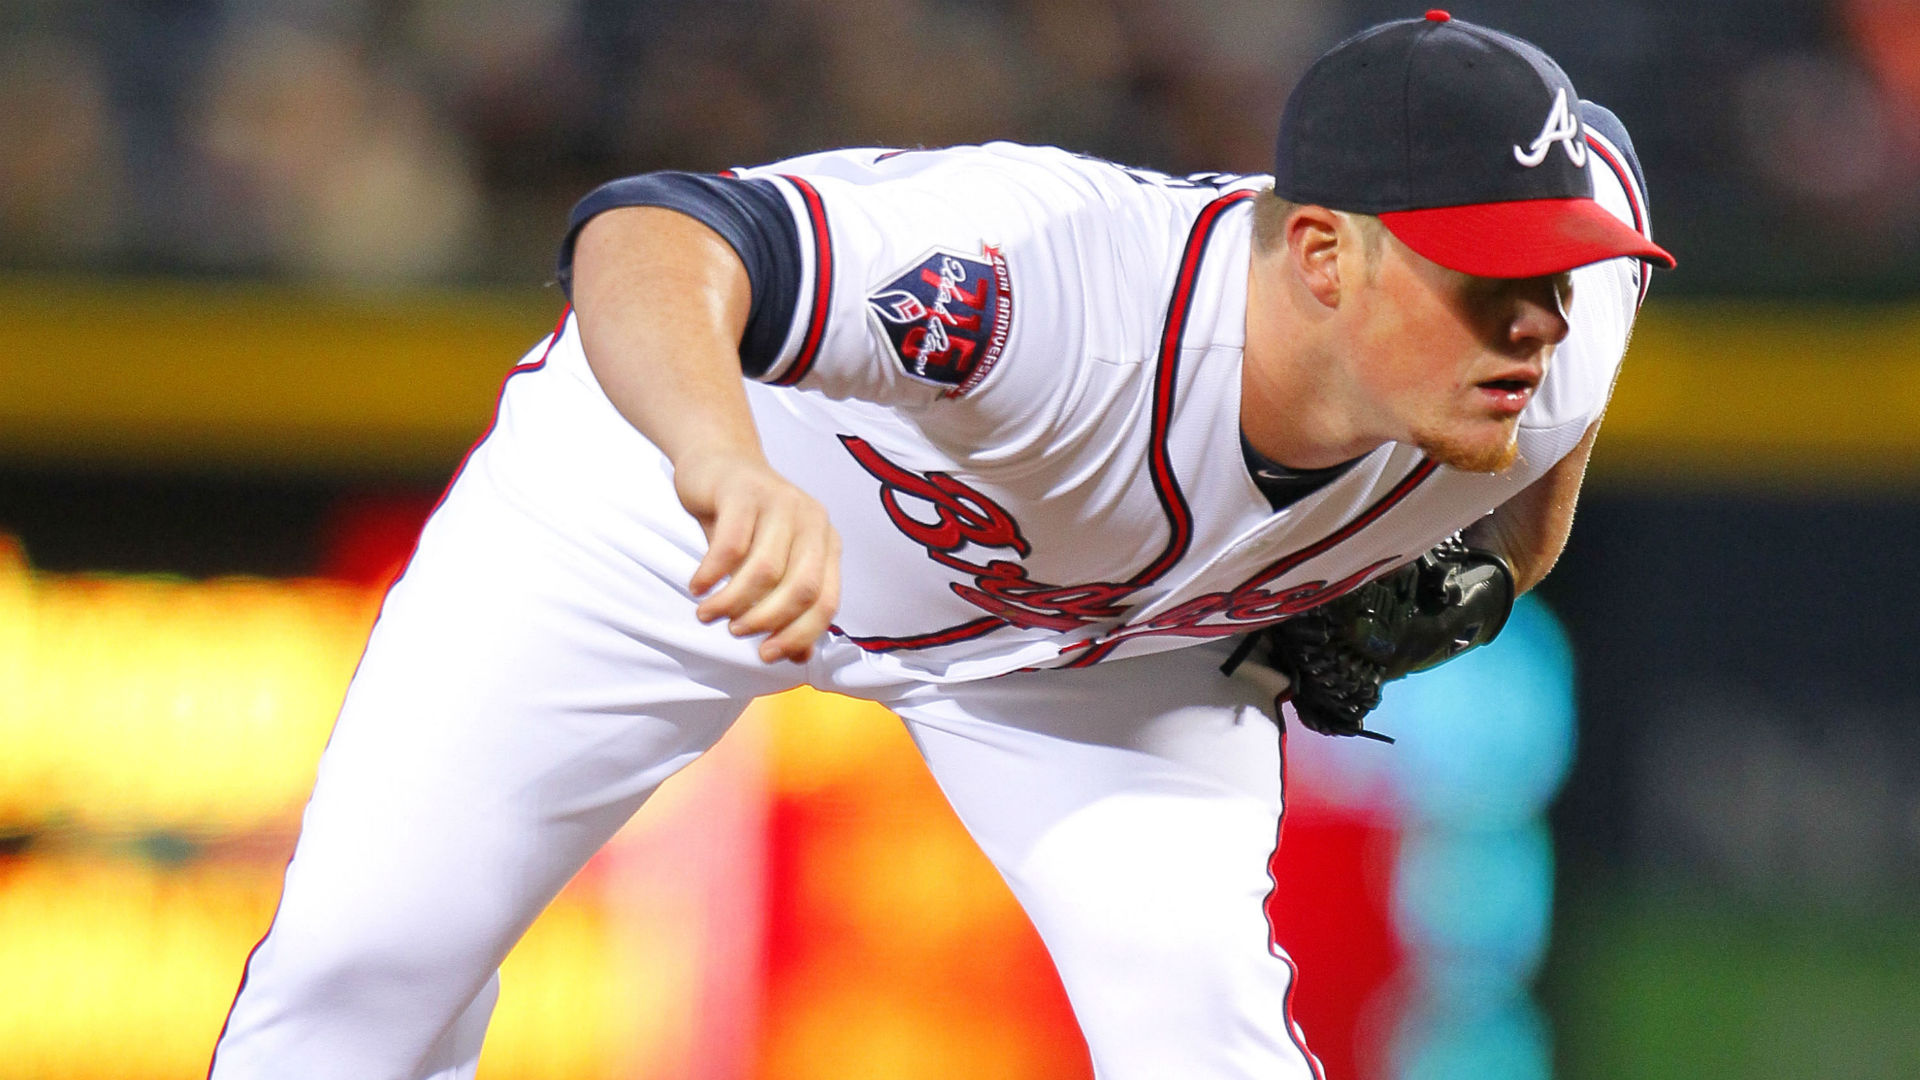 Ranking the top fantasy closers -- and relievers close to closing